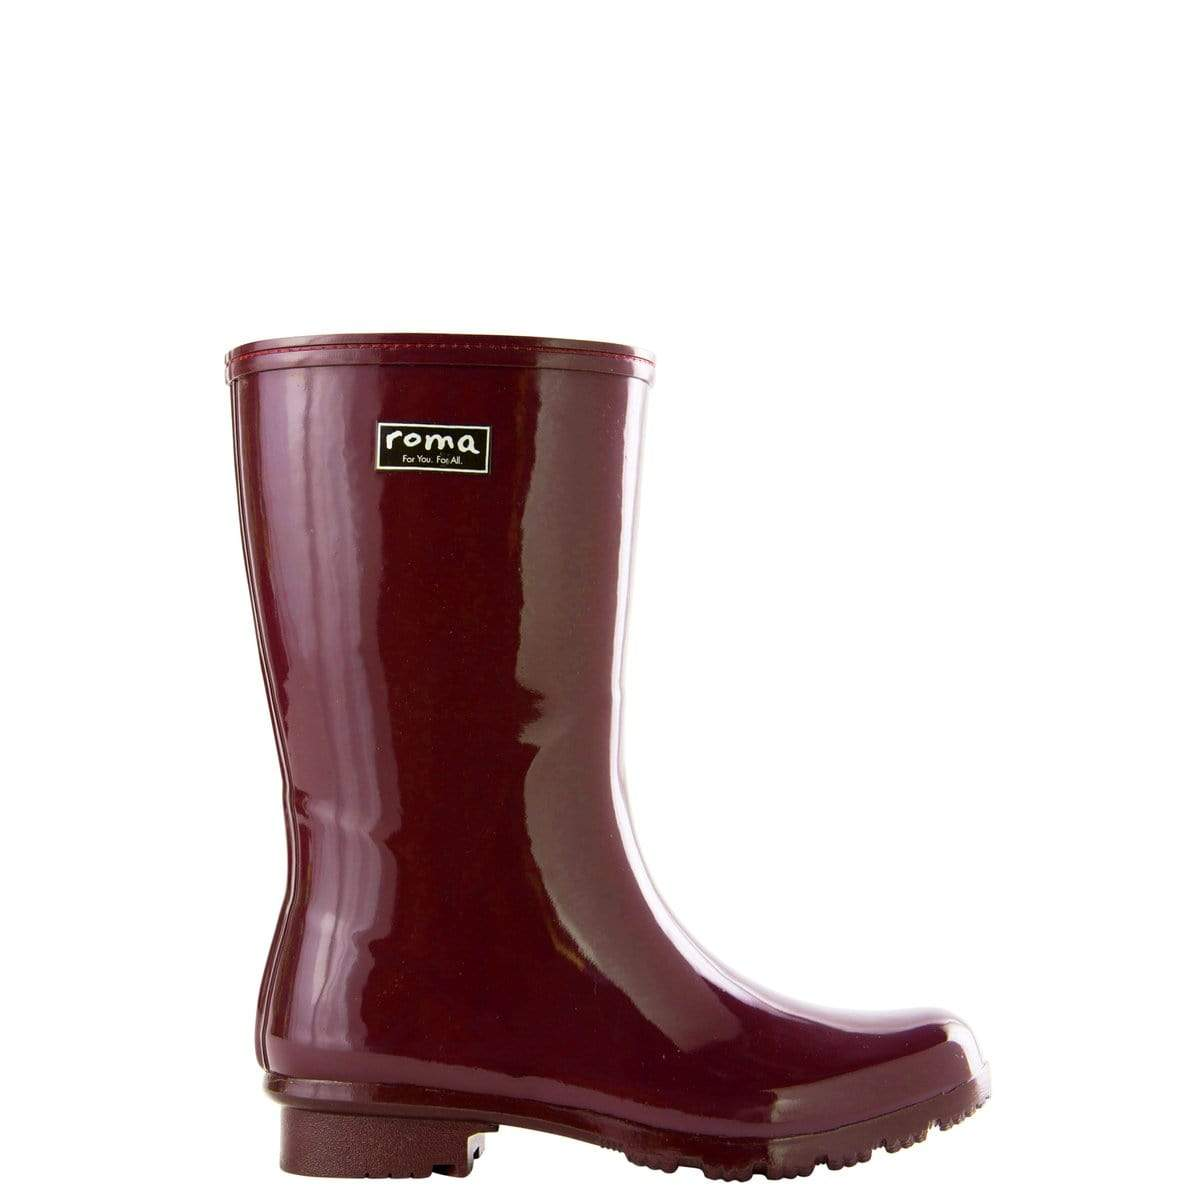 Roma Boots Boots Roma Maroon Boots